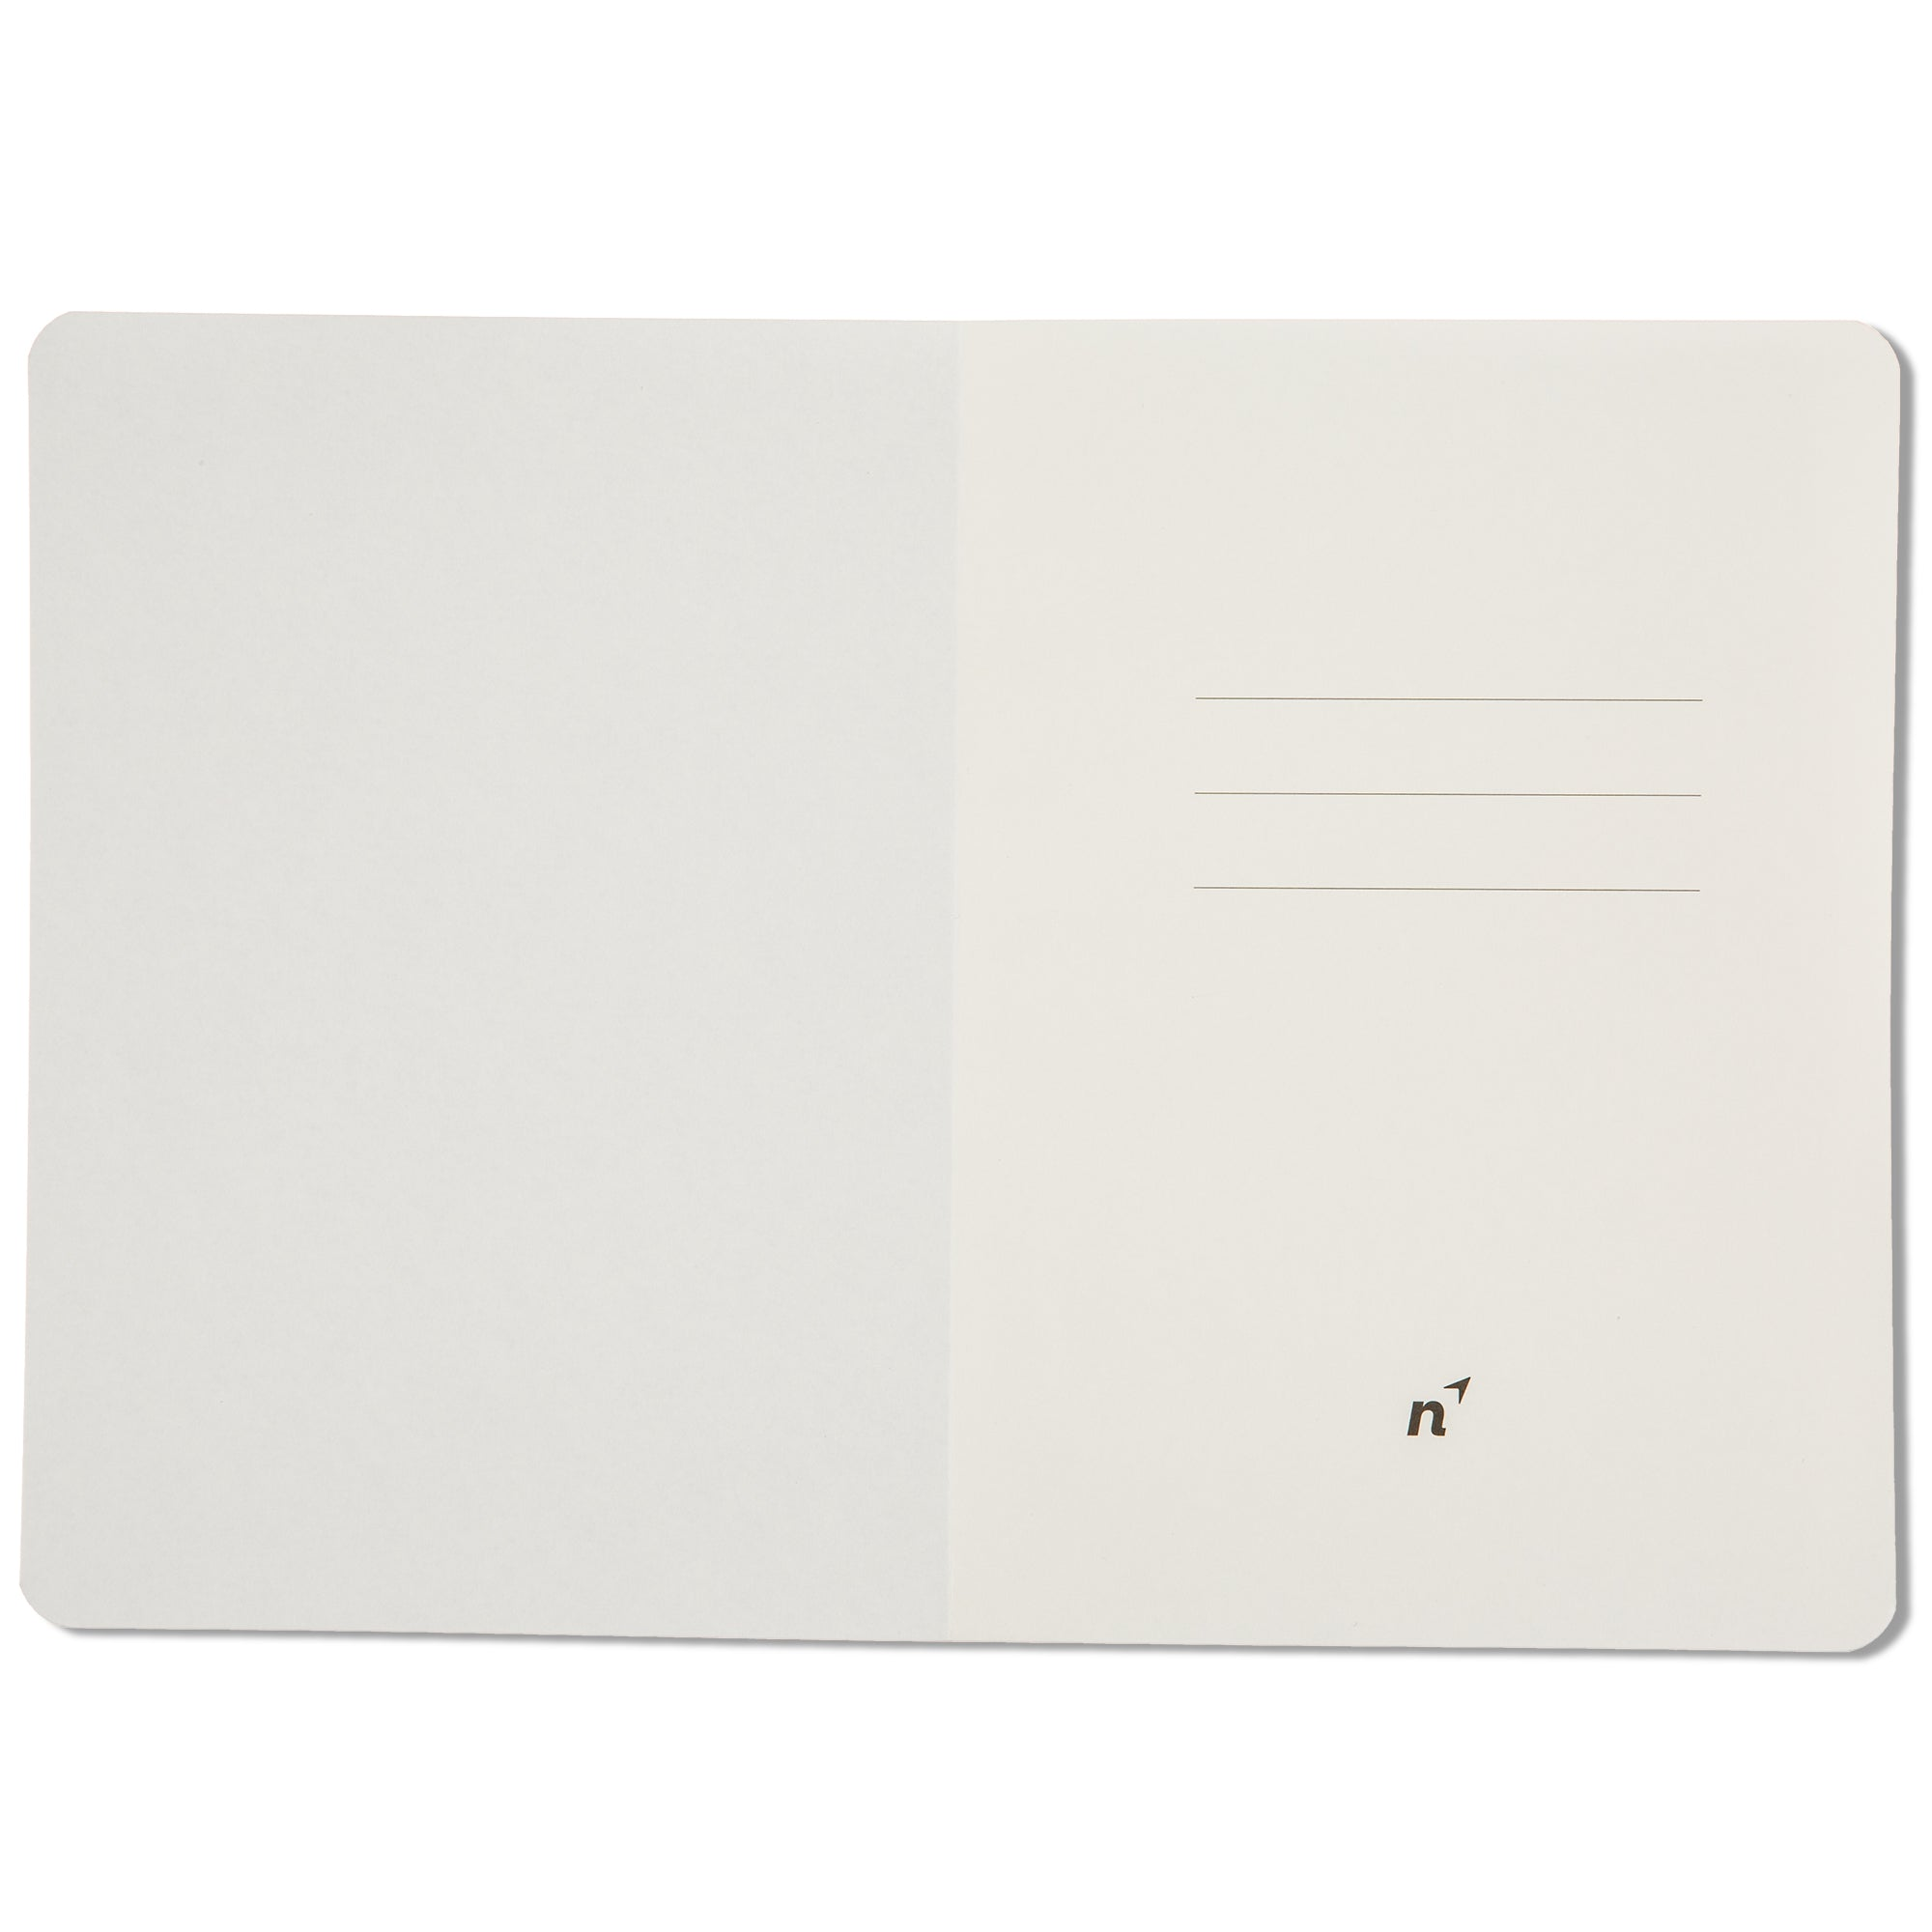 A5 X Ruled Writing Notebook